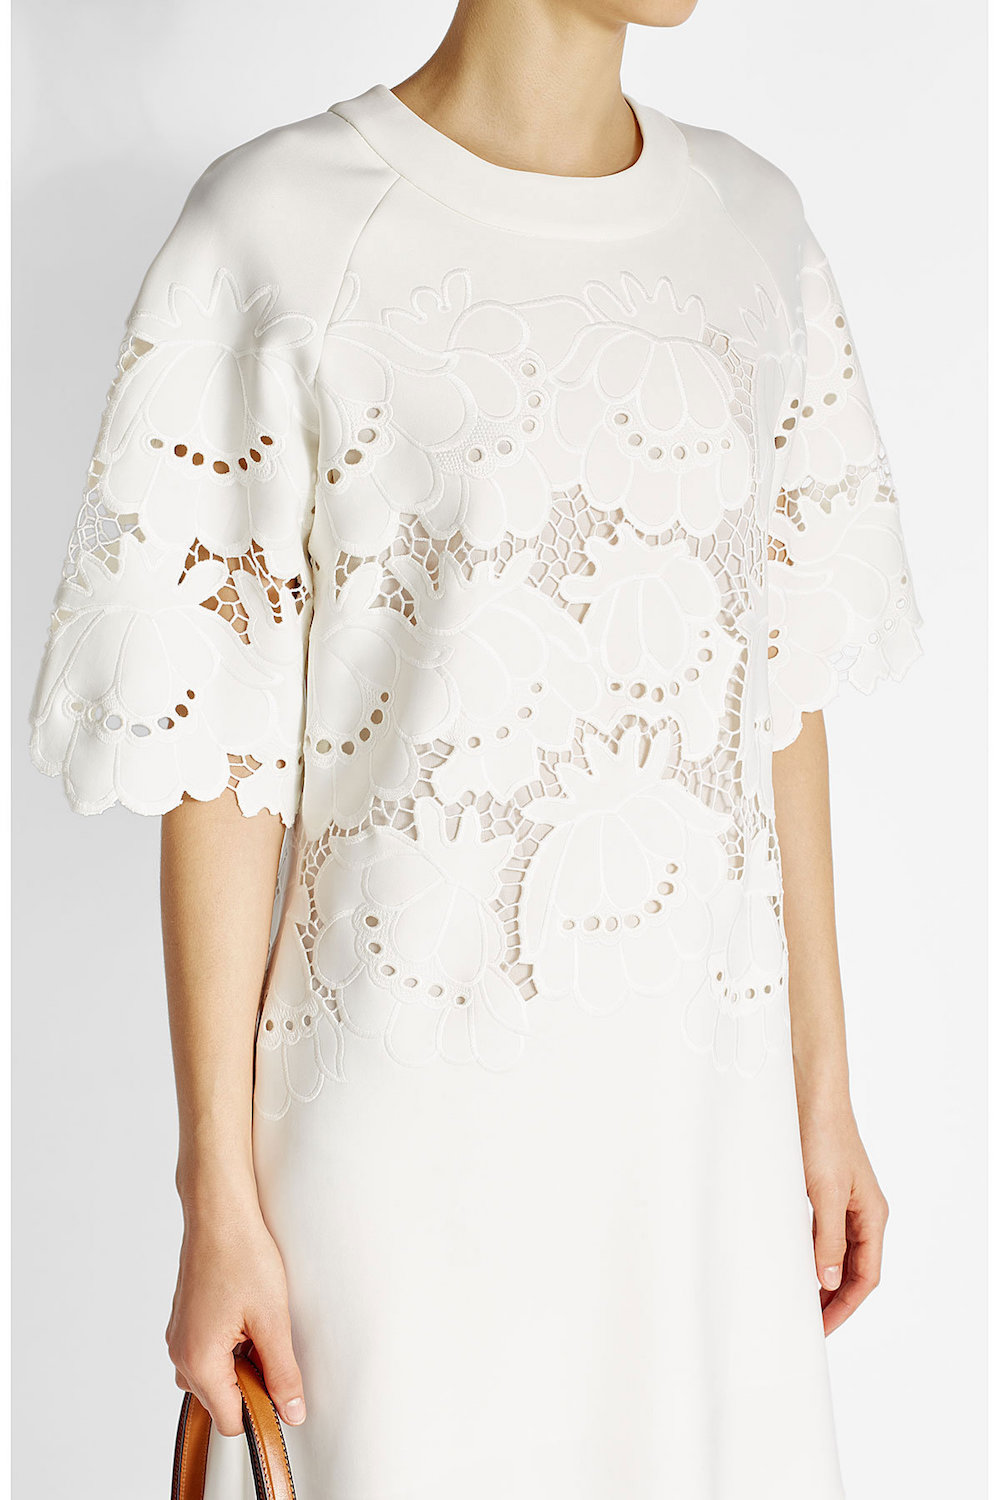 Victoria beckham dress with embroidered cut